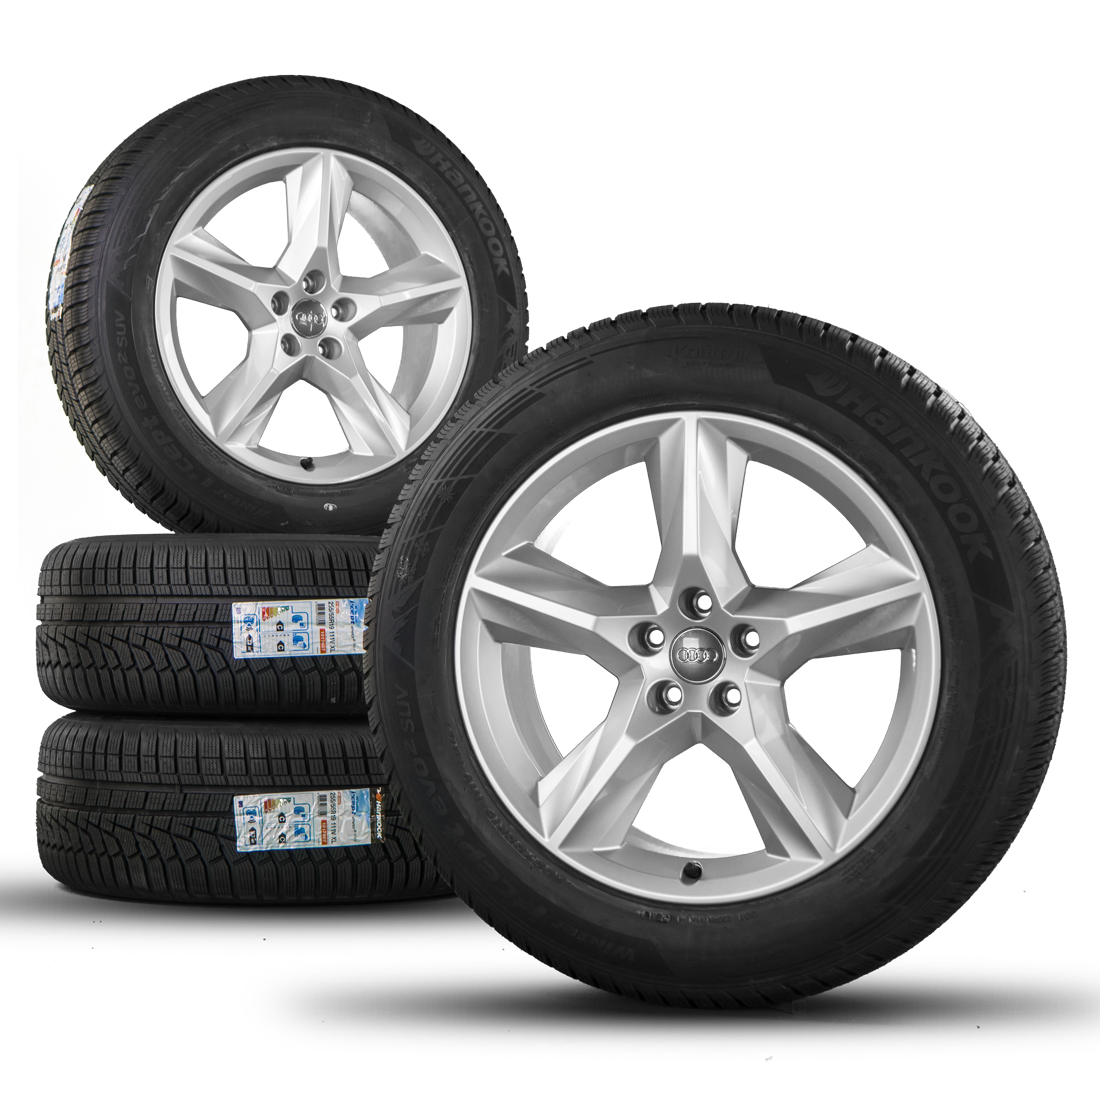 audi q7 4m 19 inch alloy wheels rims winter tyres winter. Black Bedroom Furniture Sets. Home Design Ideas